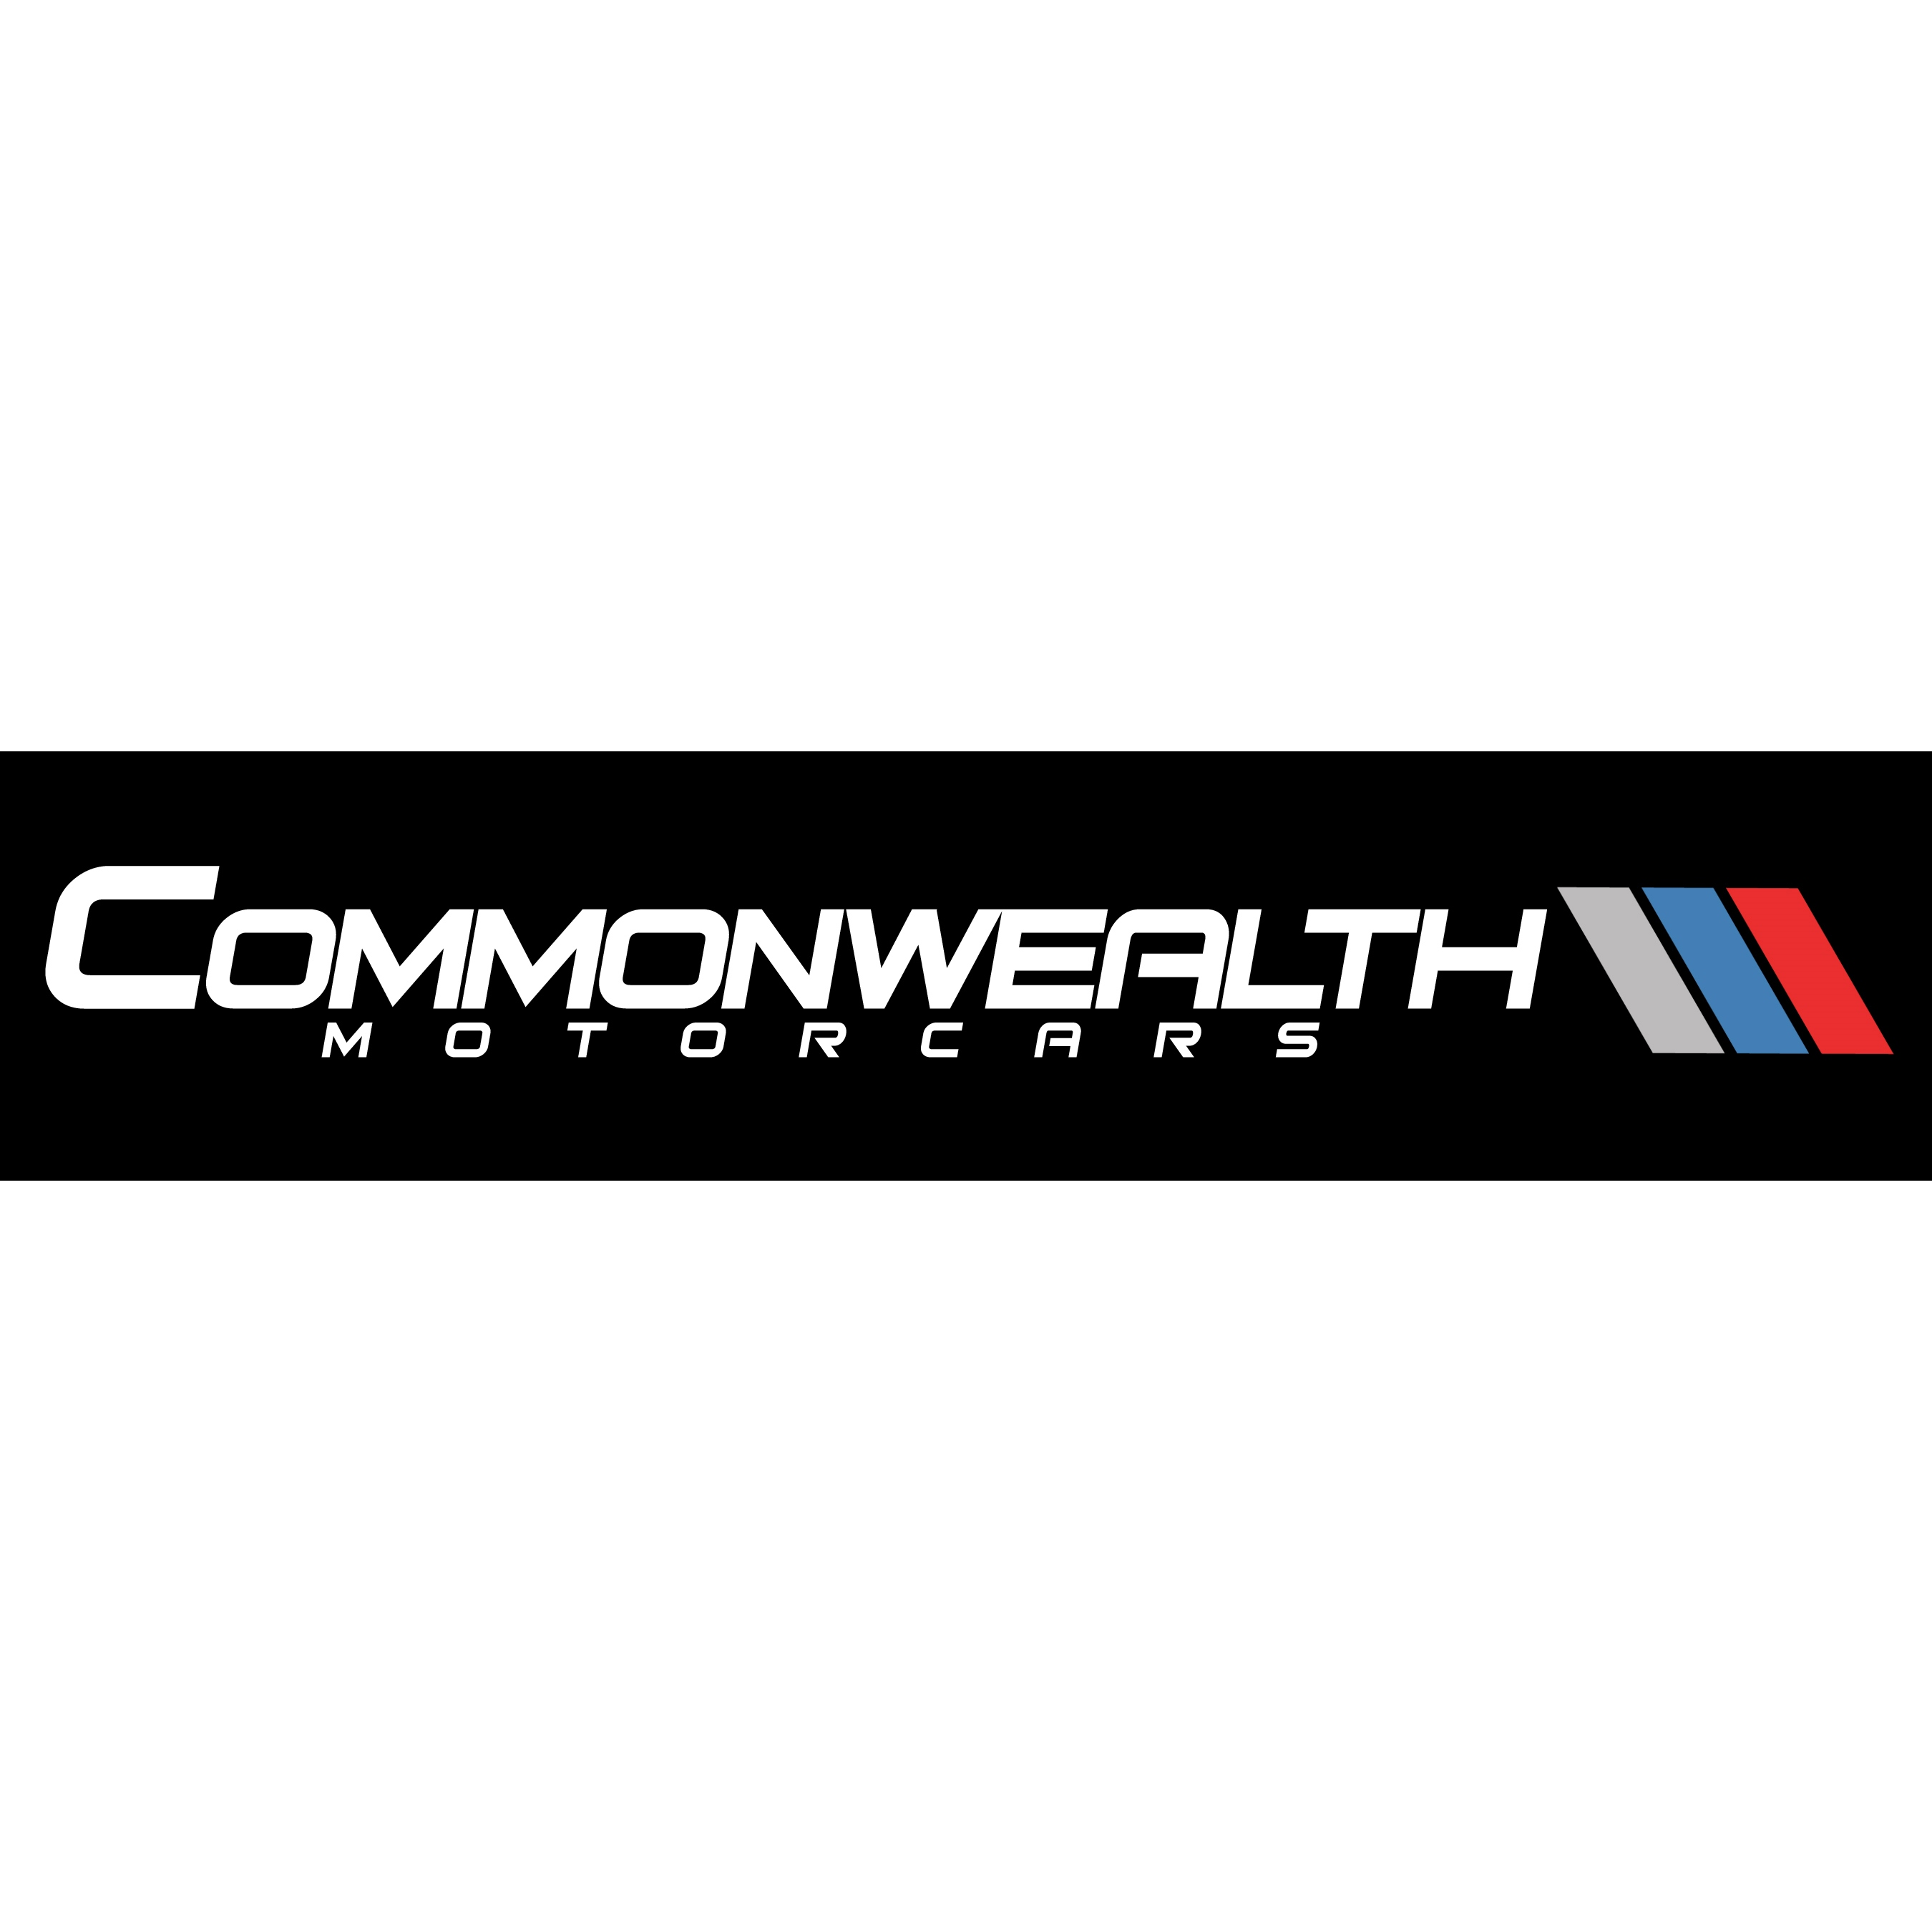 Commonwealth Motorcars Sales and Services, LLC